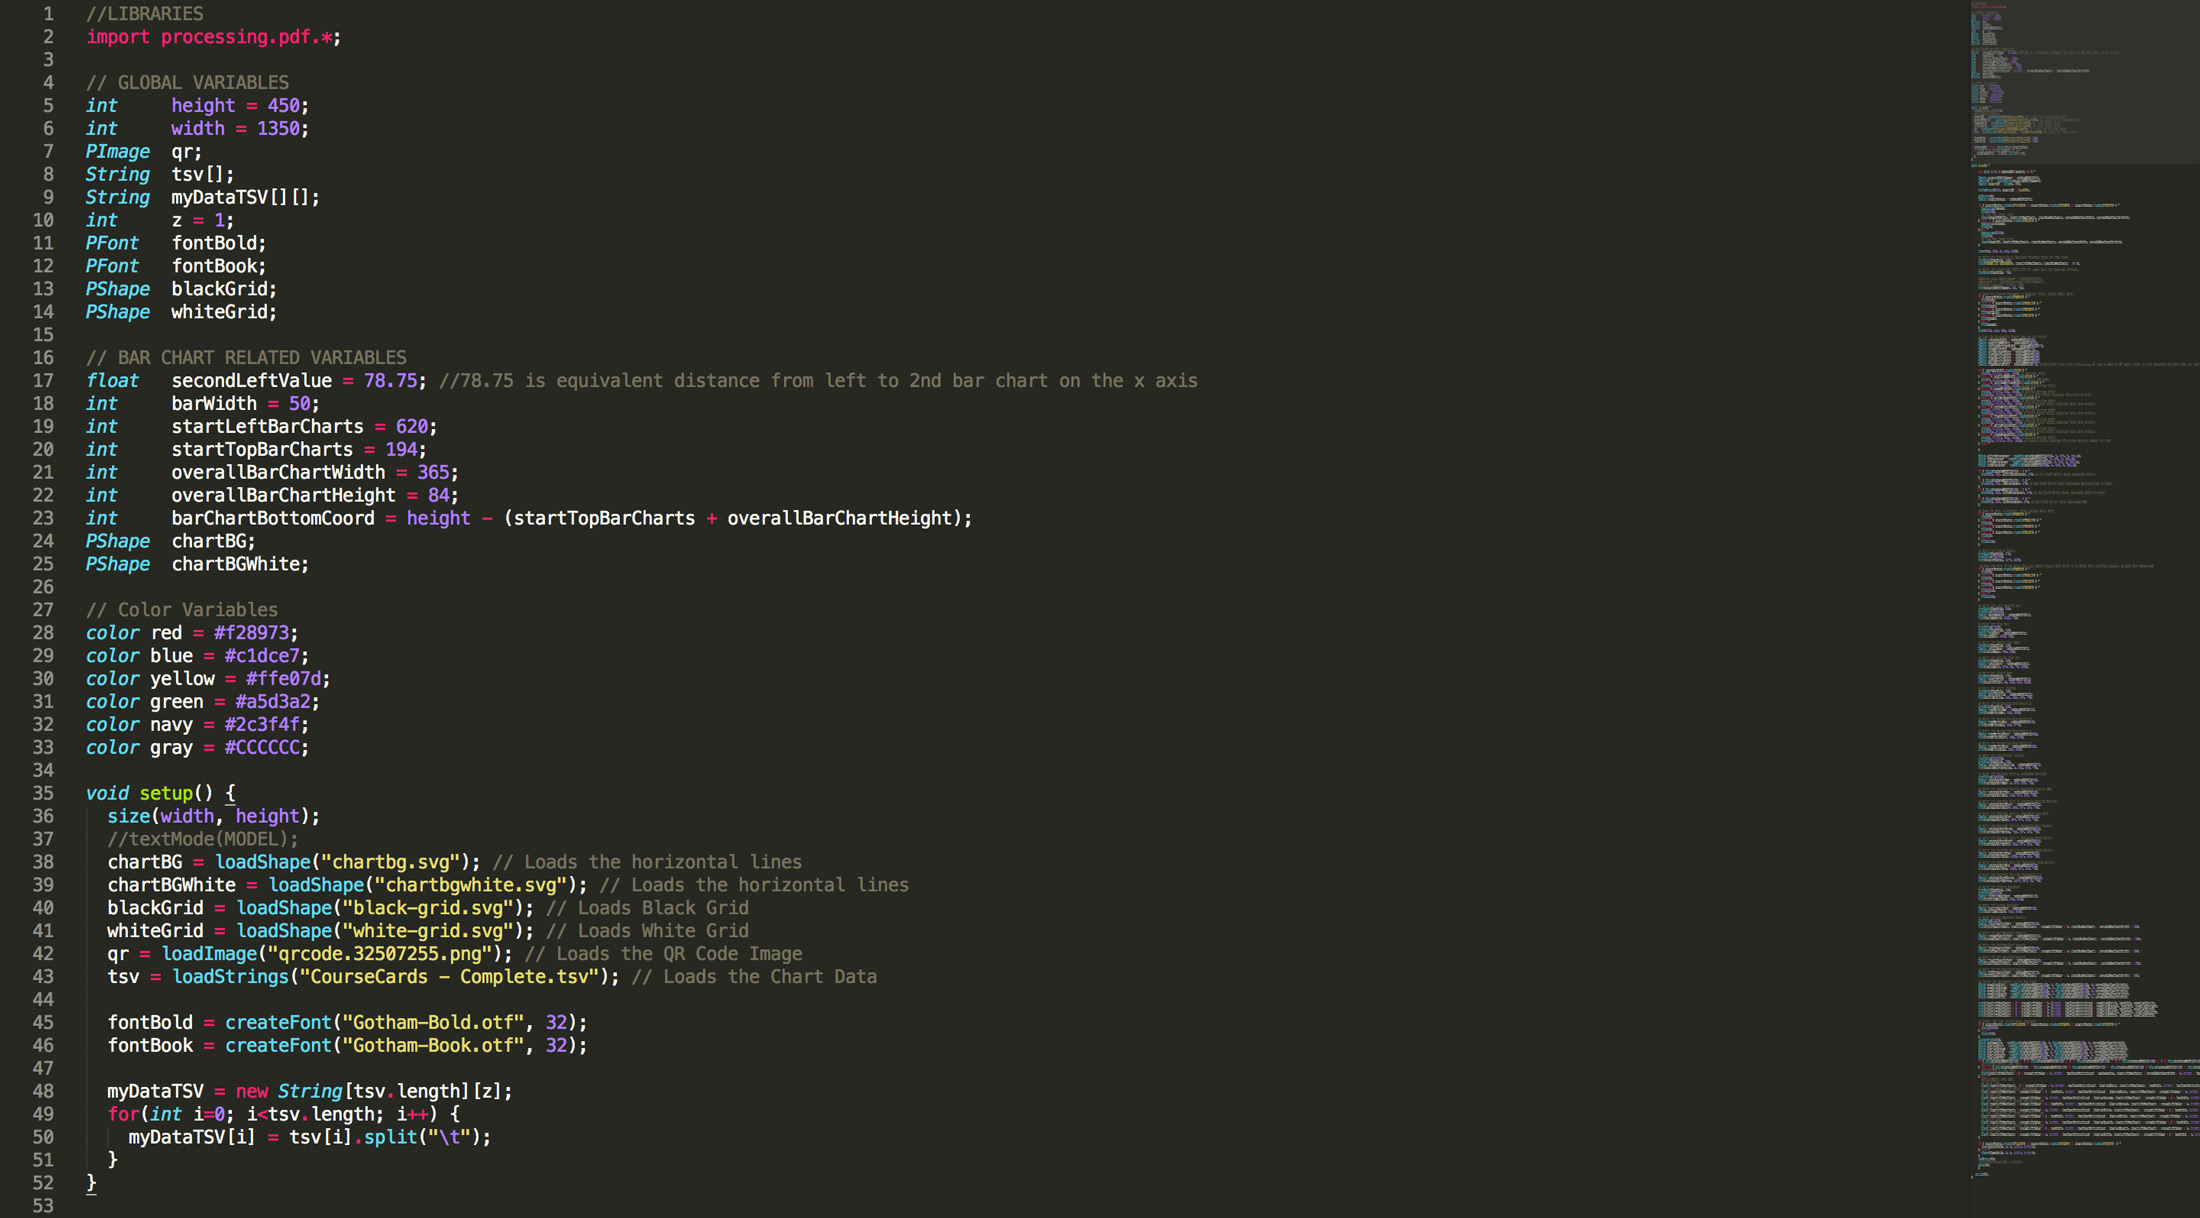 An images showing a portion of the processing code in Sublime Text.